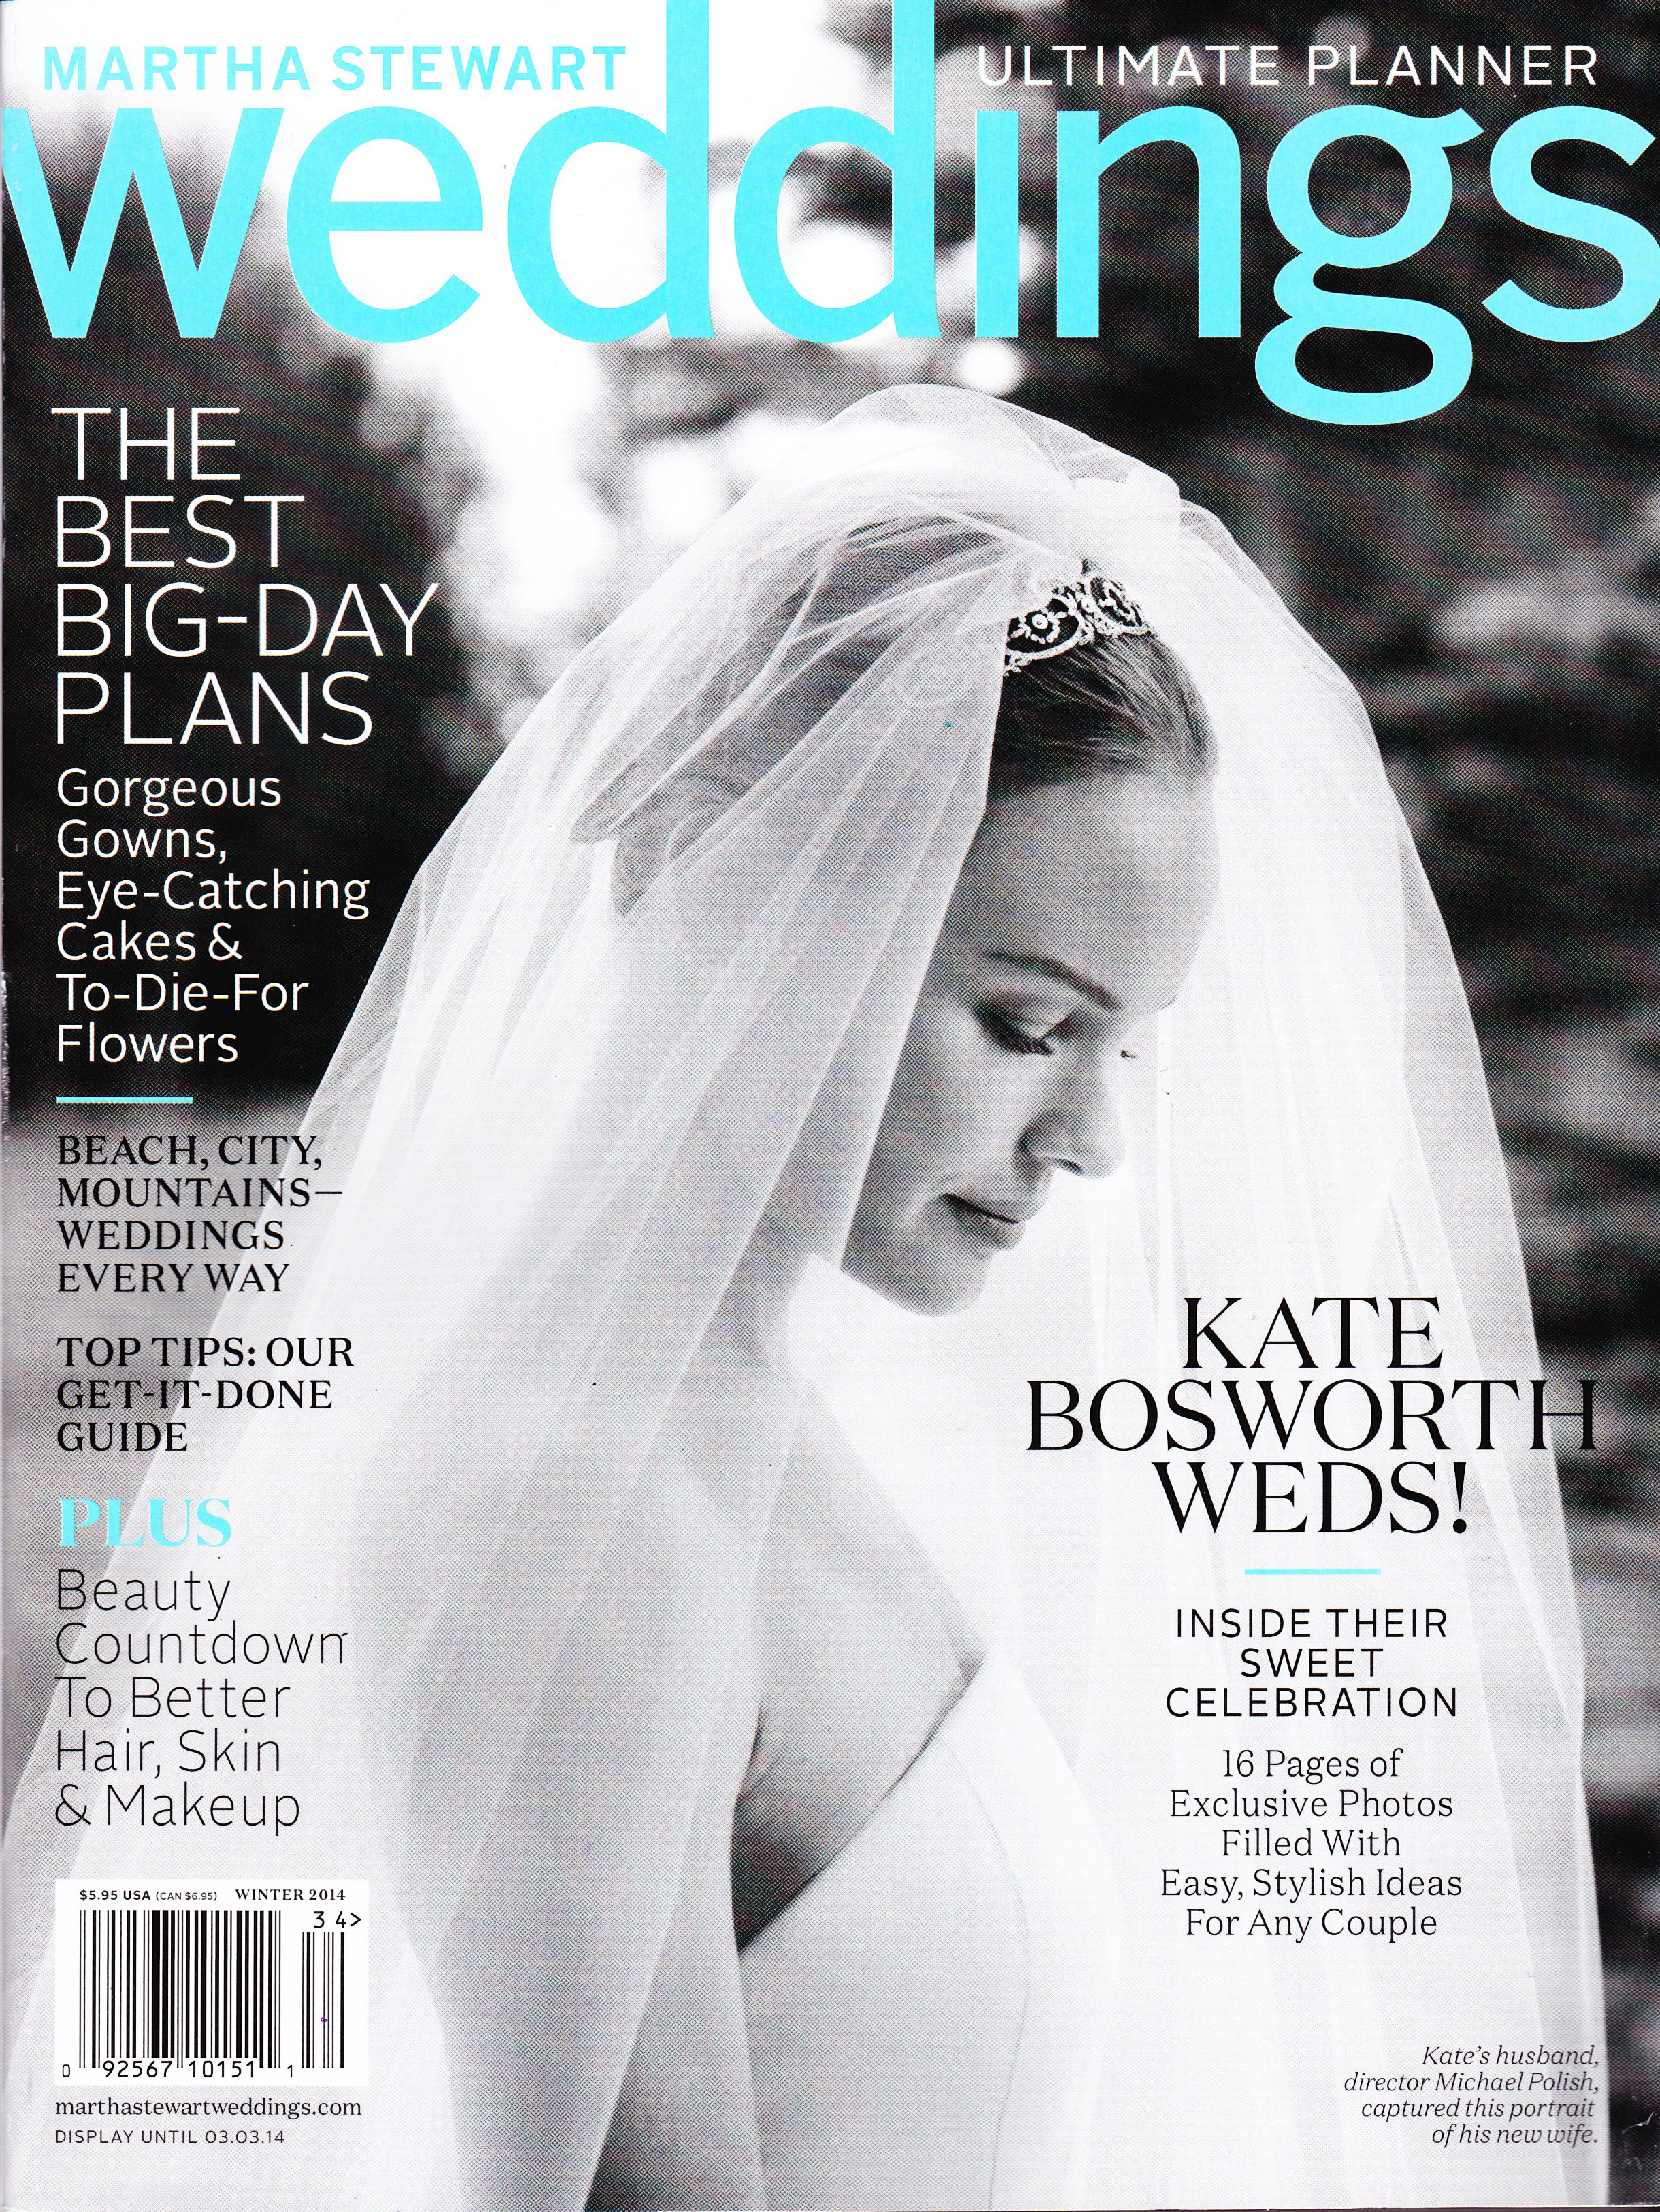 MS_Weddings_Winter2013_Cover.jpg